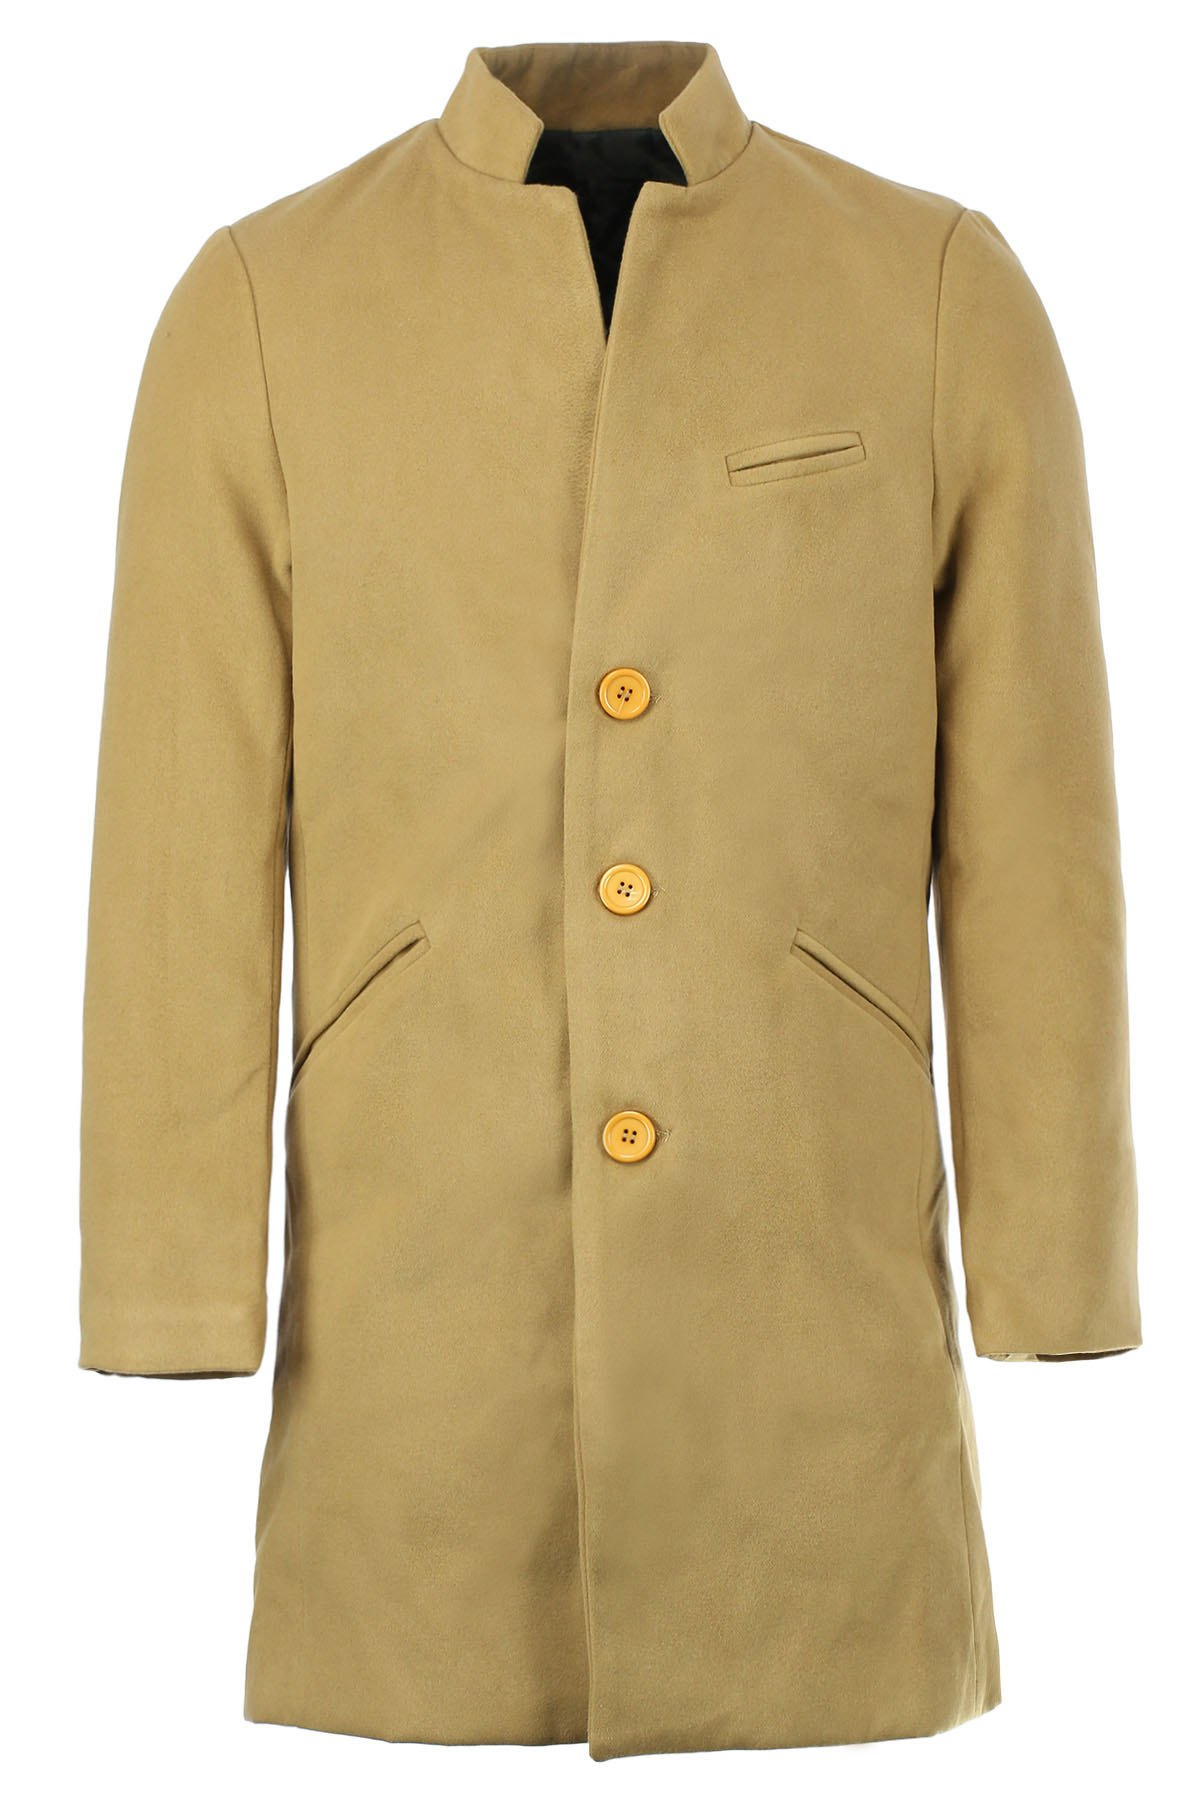 Casual Stand Collar Long Sleeve Solid Color Woolen Trench Coat For Men